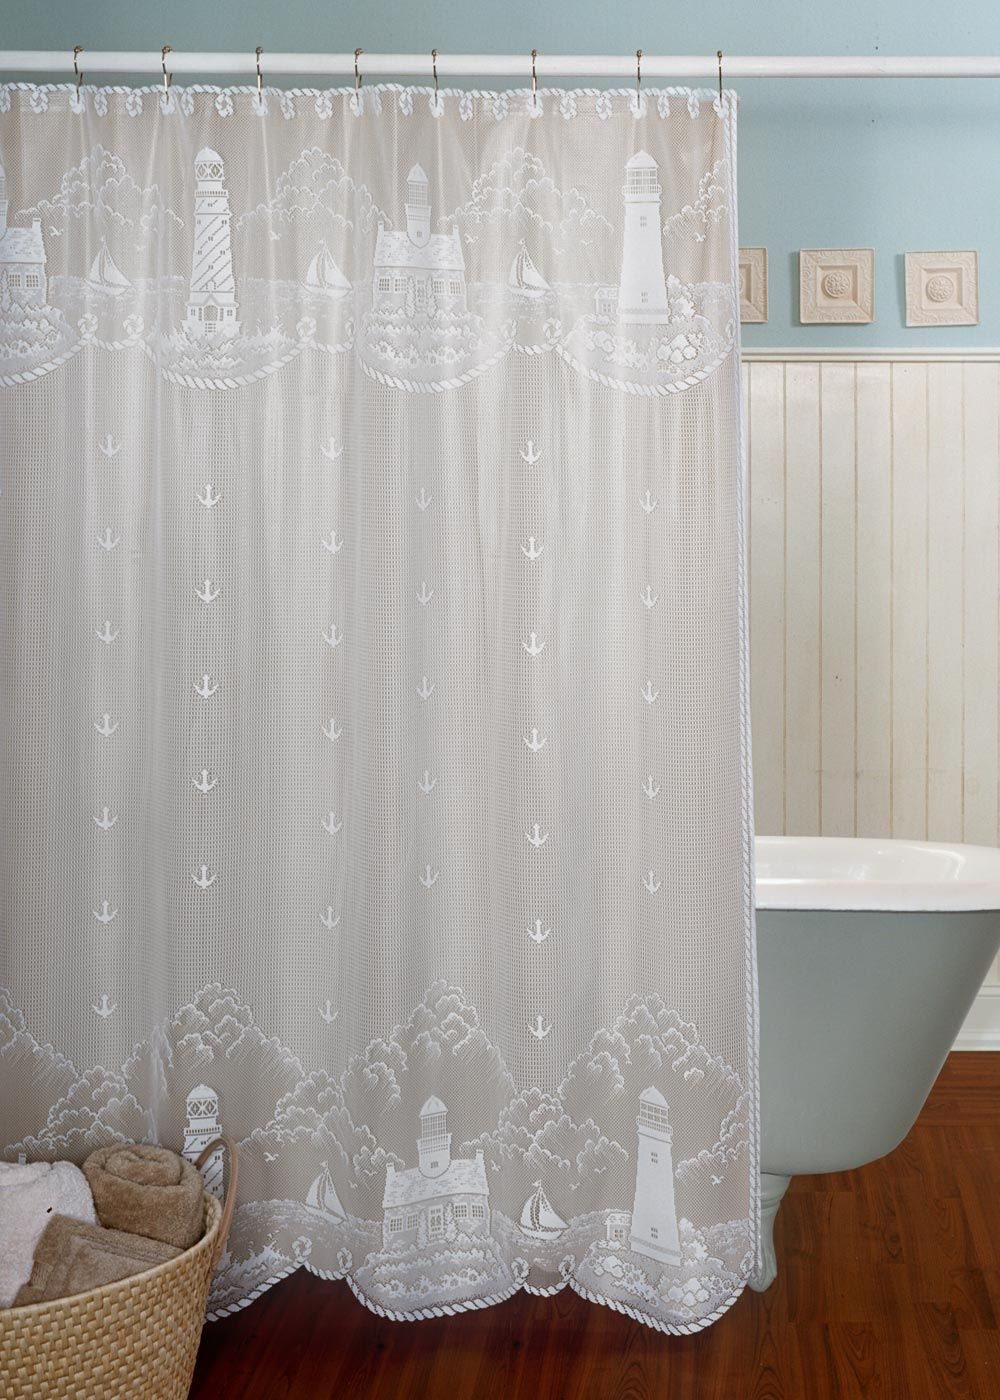 Decorate Your Lake House Bathroom With A Shoreline View With This